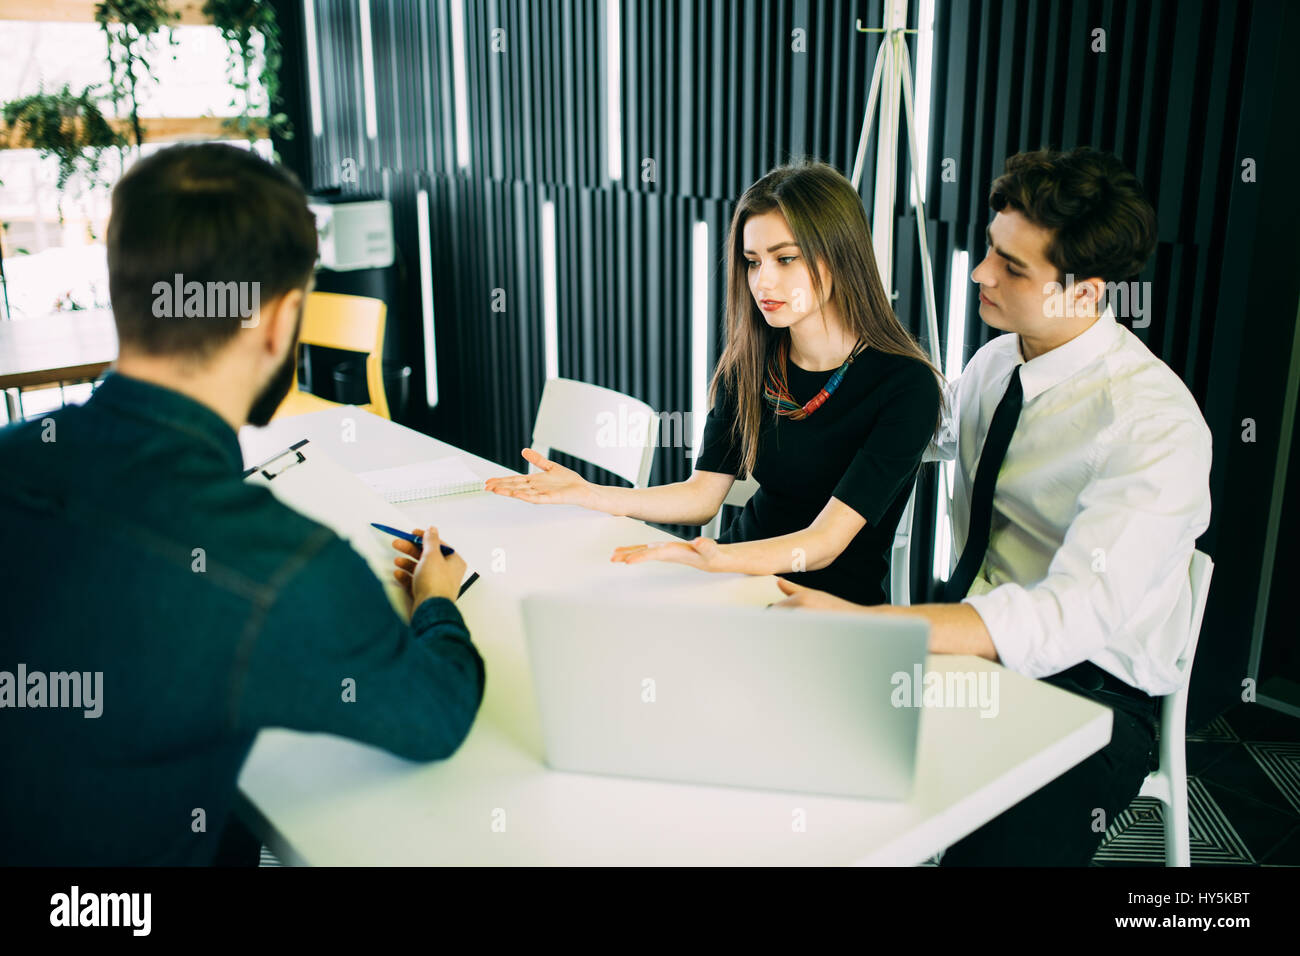 Broker making a presentation to couple showing them a document which they are viewing with serious expressions - Stock Image